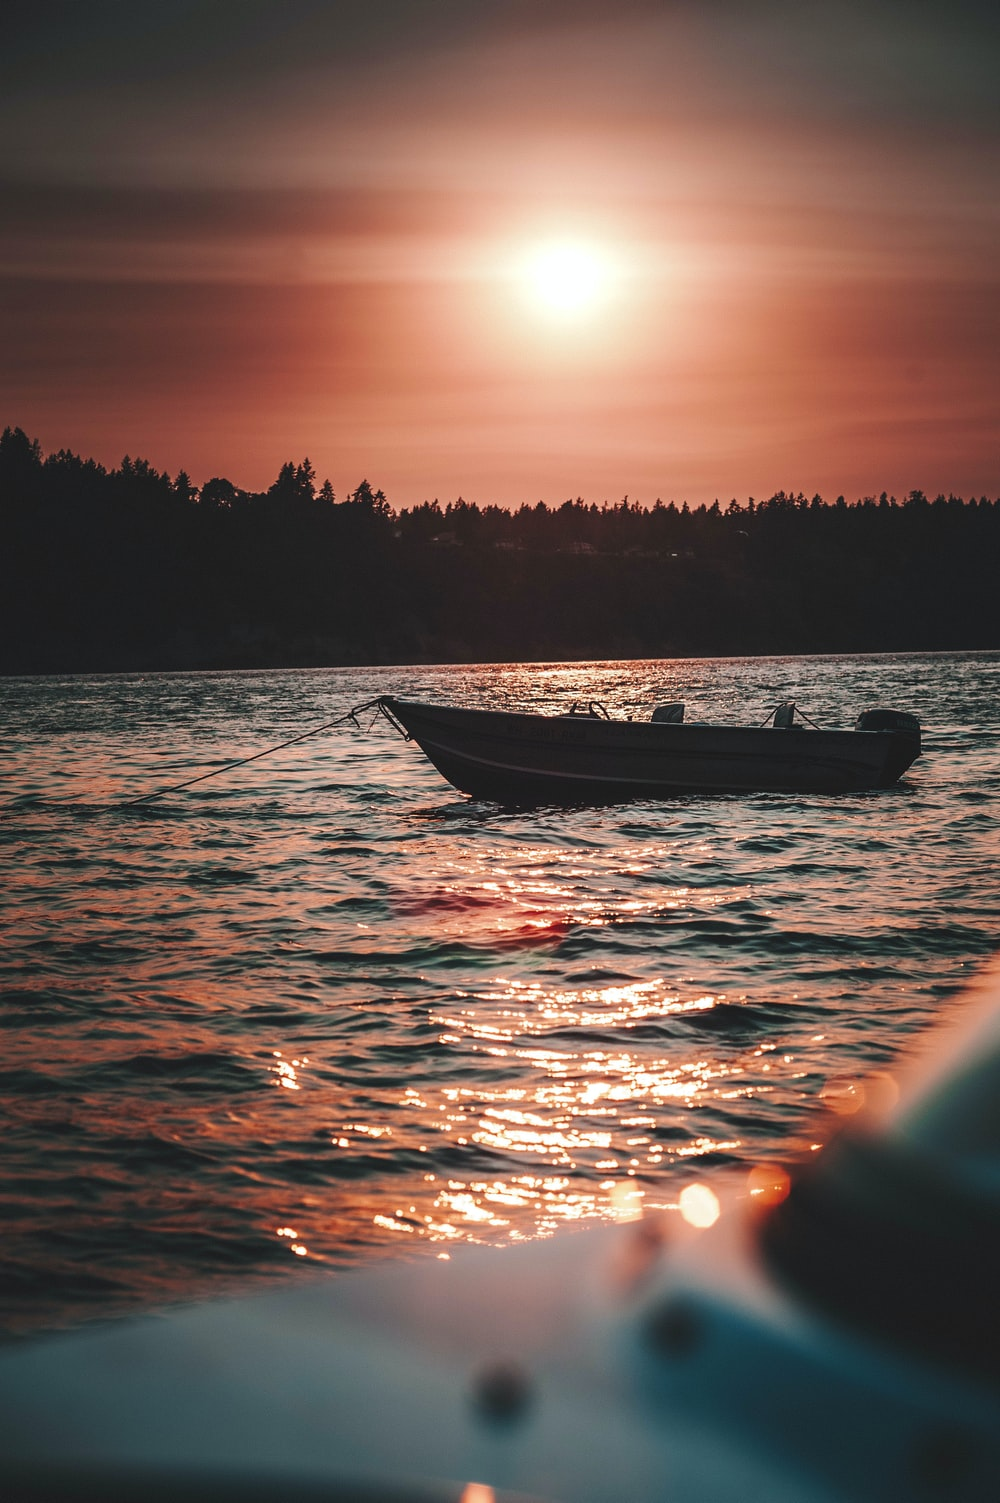 silhouette of person riding on boat during sunset